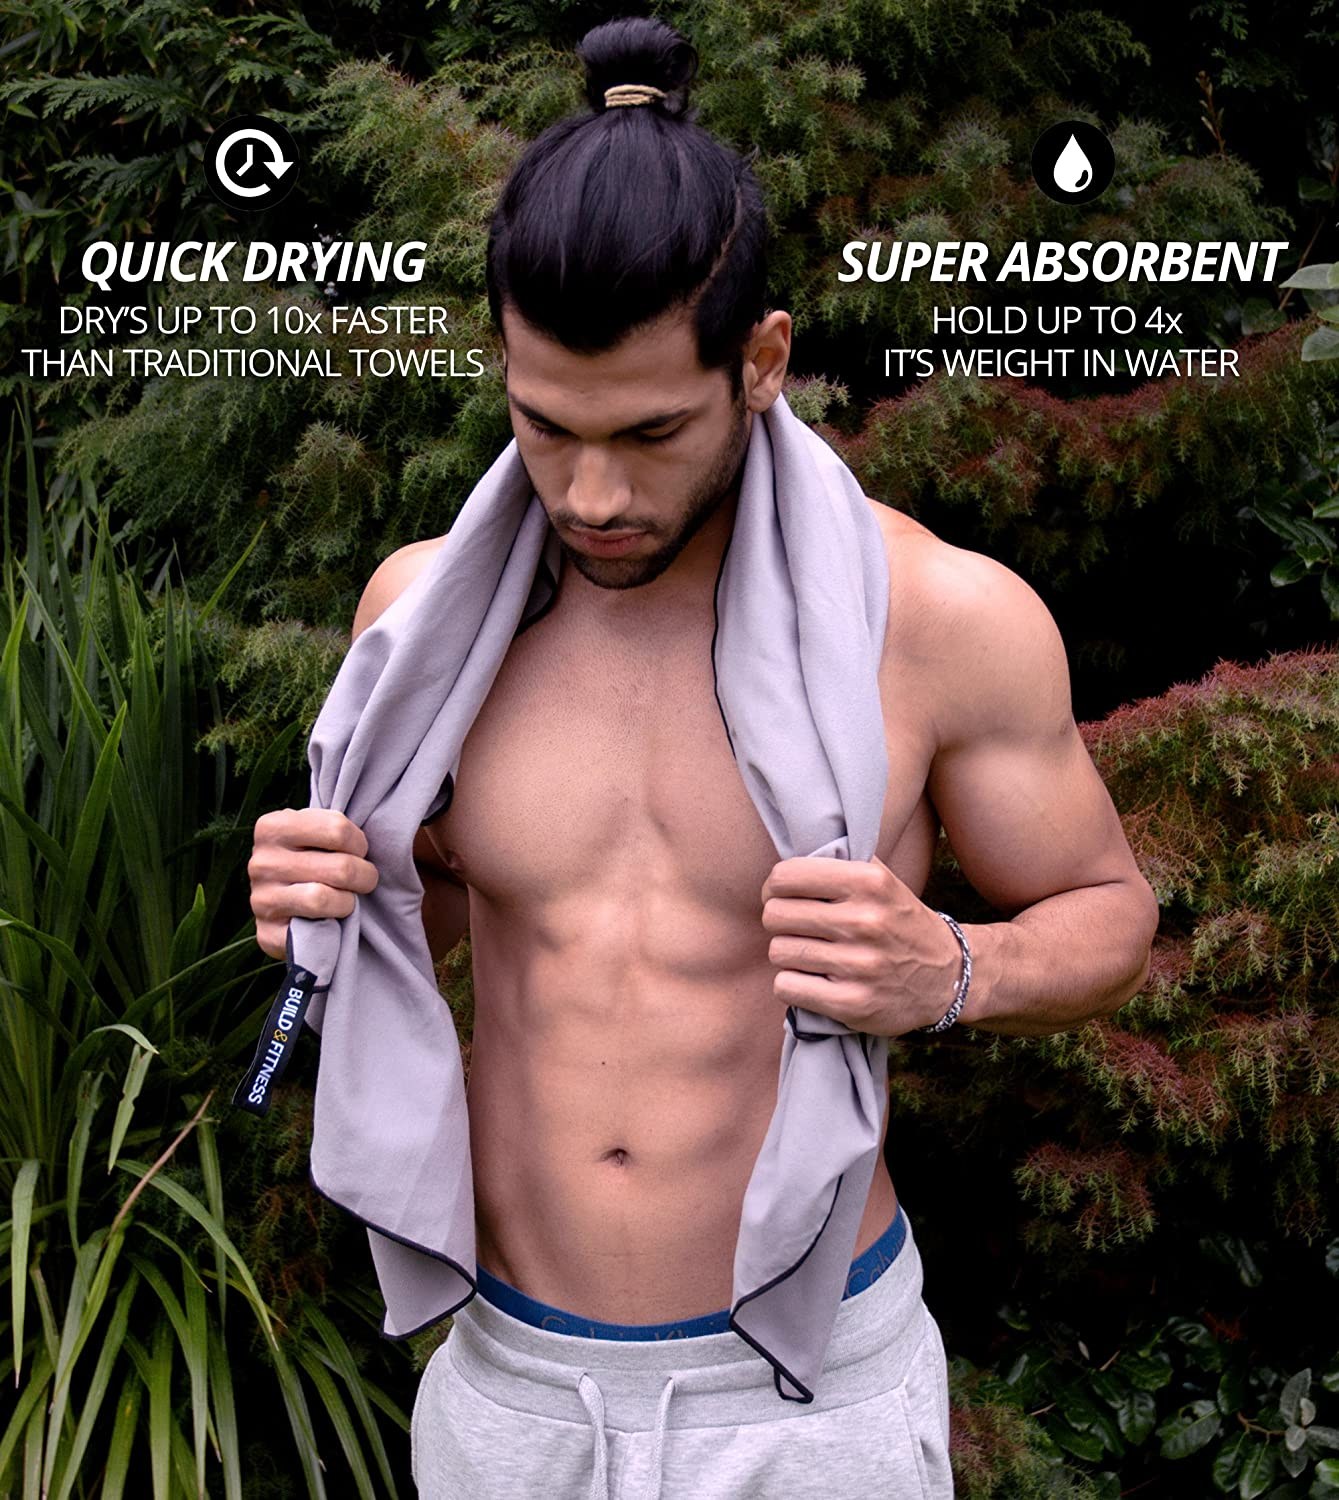 Beach Lightweight Super Absorbent Sport Towel Sports Swimming Carry Bag Camping Travel Yoga Quick Drying Compact Best Towel for Gym Fitness